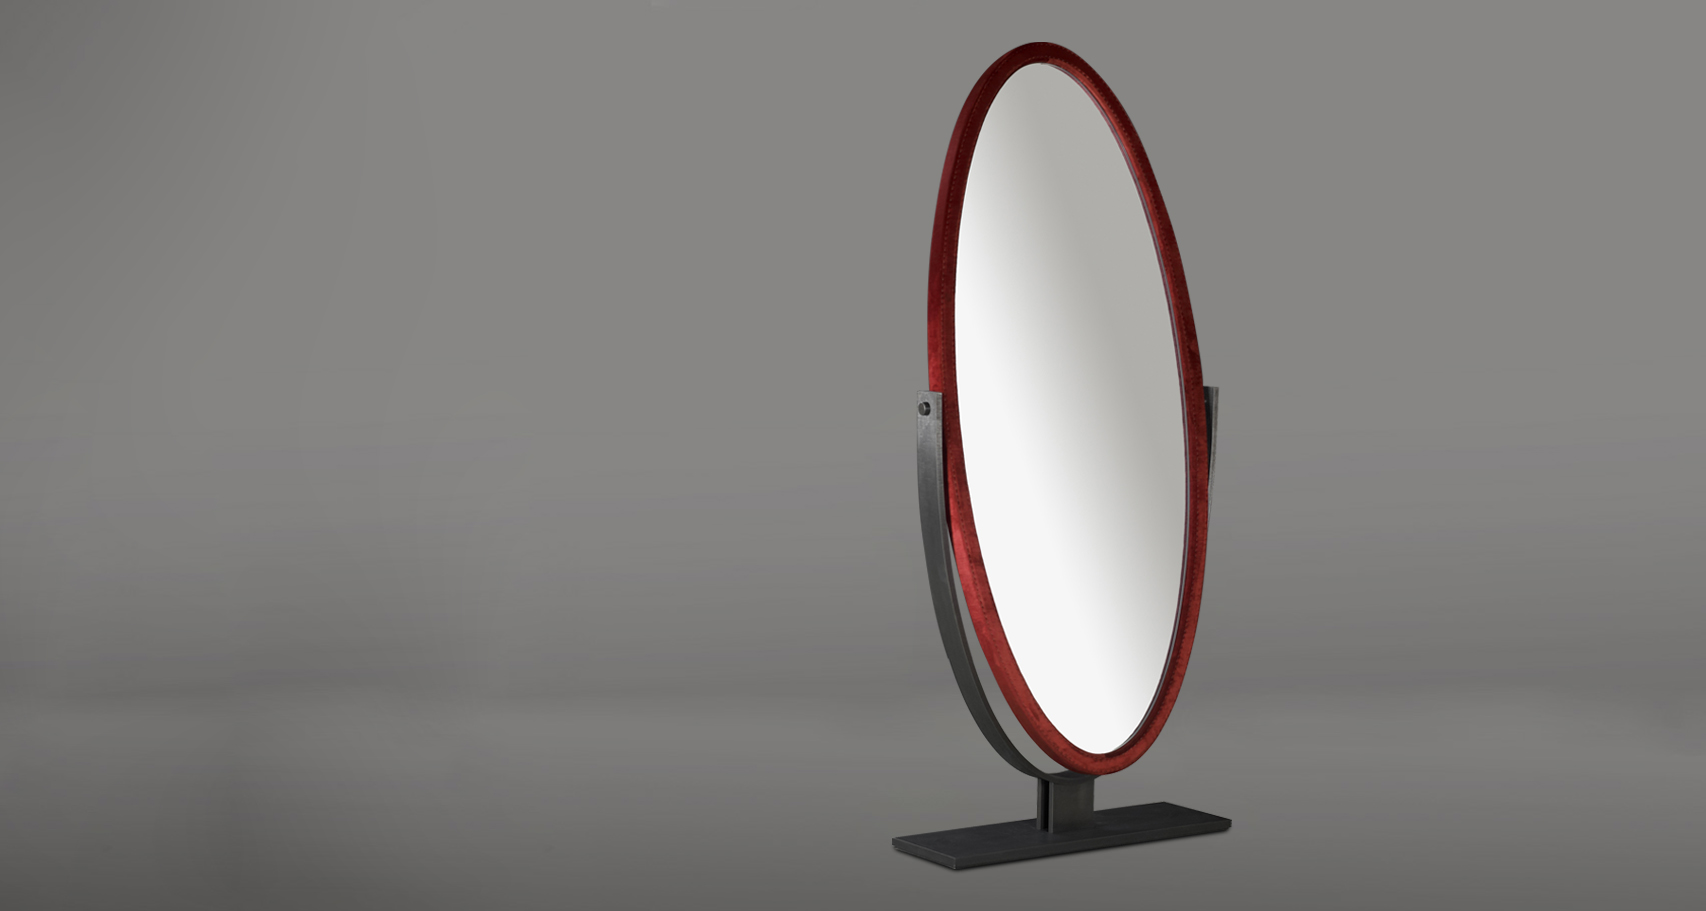 Ingrid is an elliptical revolving mirror with a bronzed metal base, from the Promemoria's catalogue | Promemoria